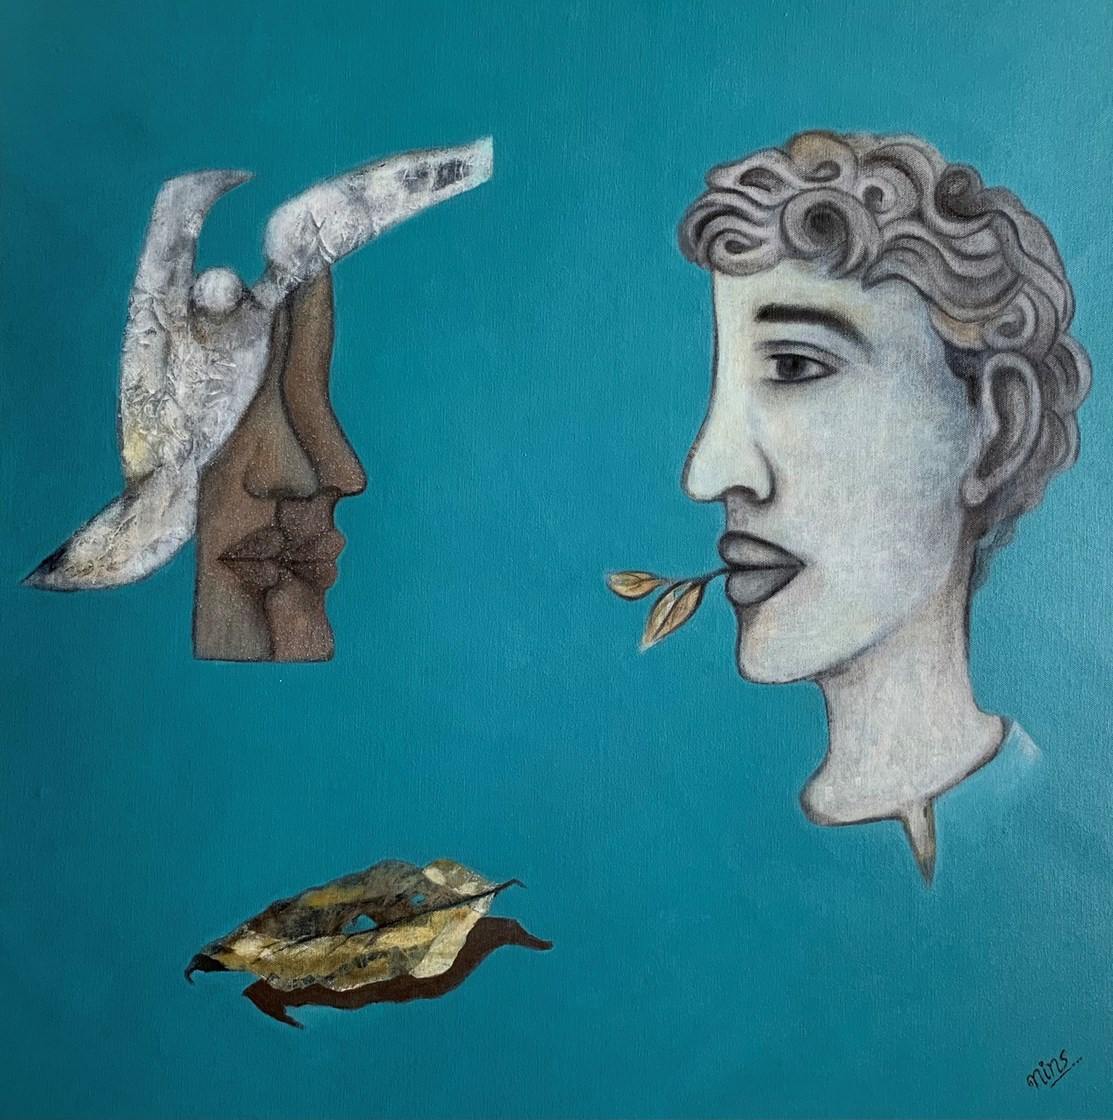 Contradictions of Being by Neena Sethia, image of a head, a leaf, and other shapes on a blue background